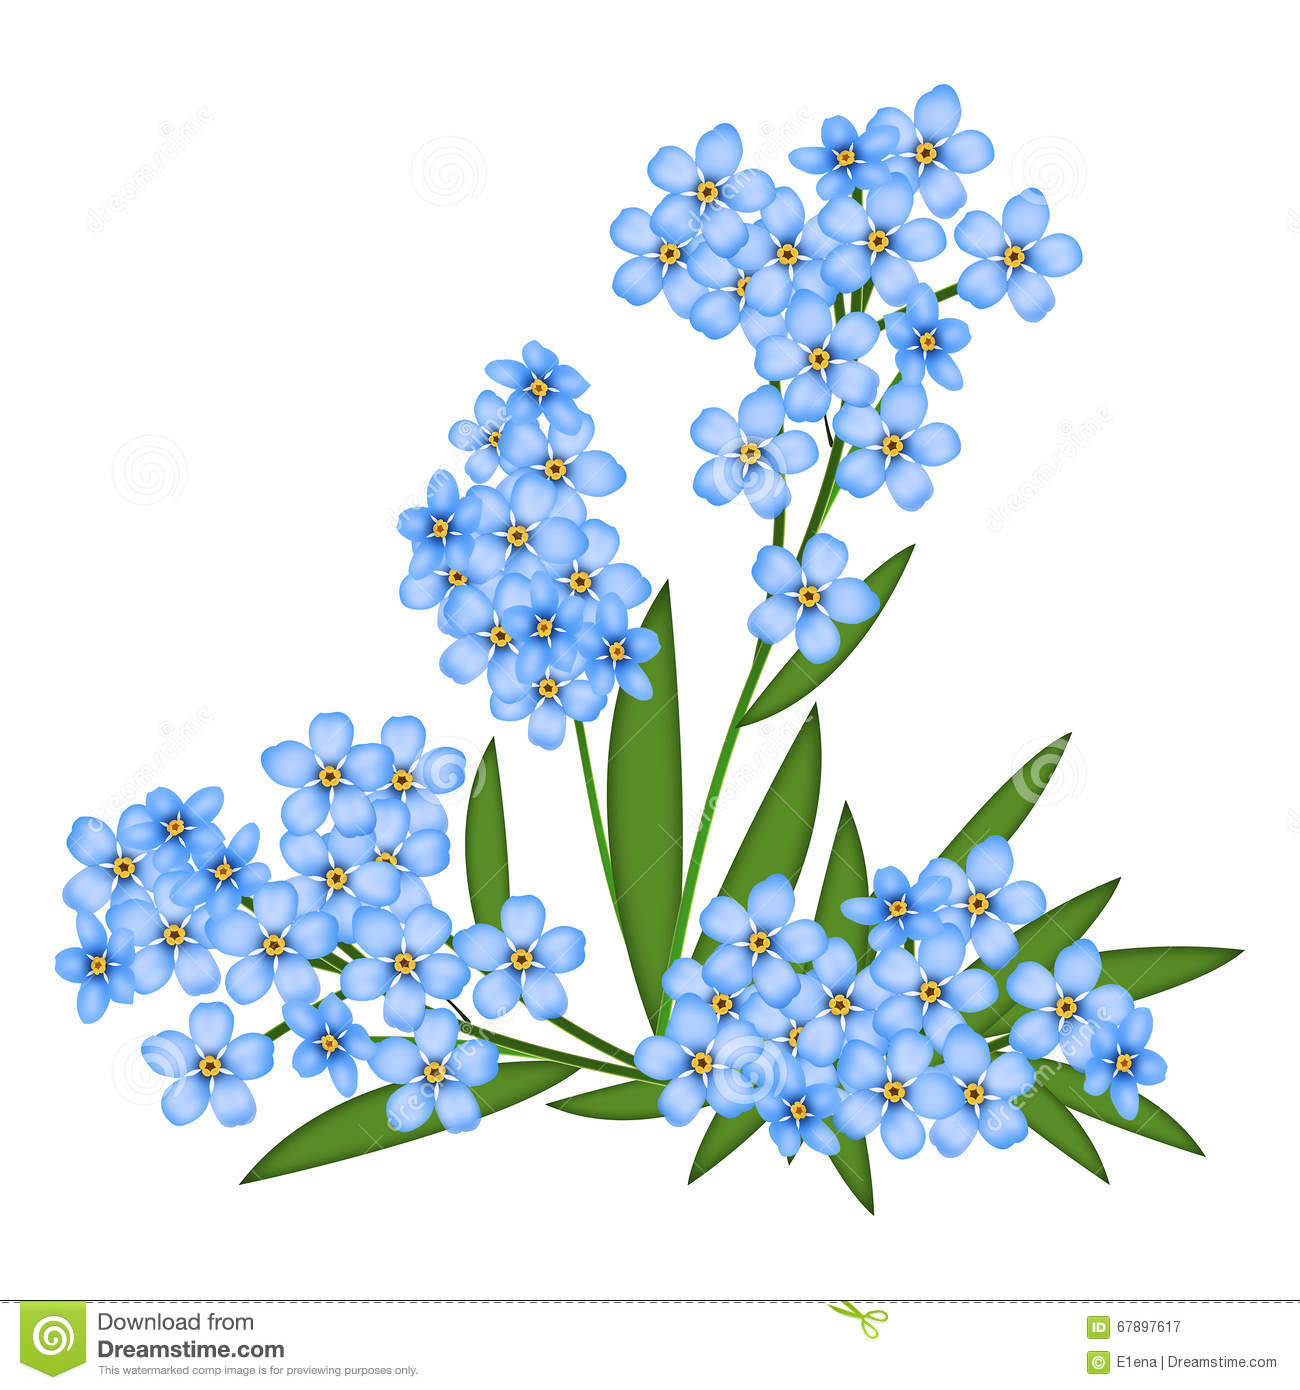 Forget-me-not stock illustration. Image of nobody, object ...